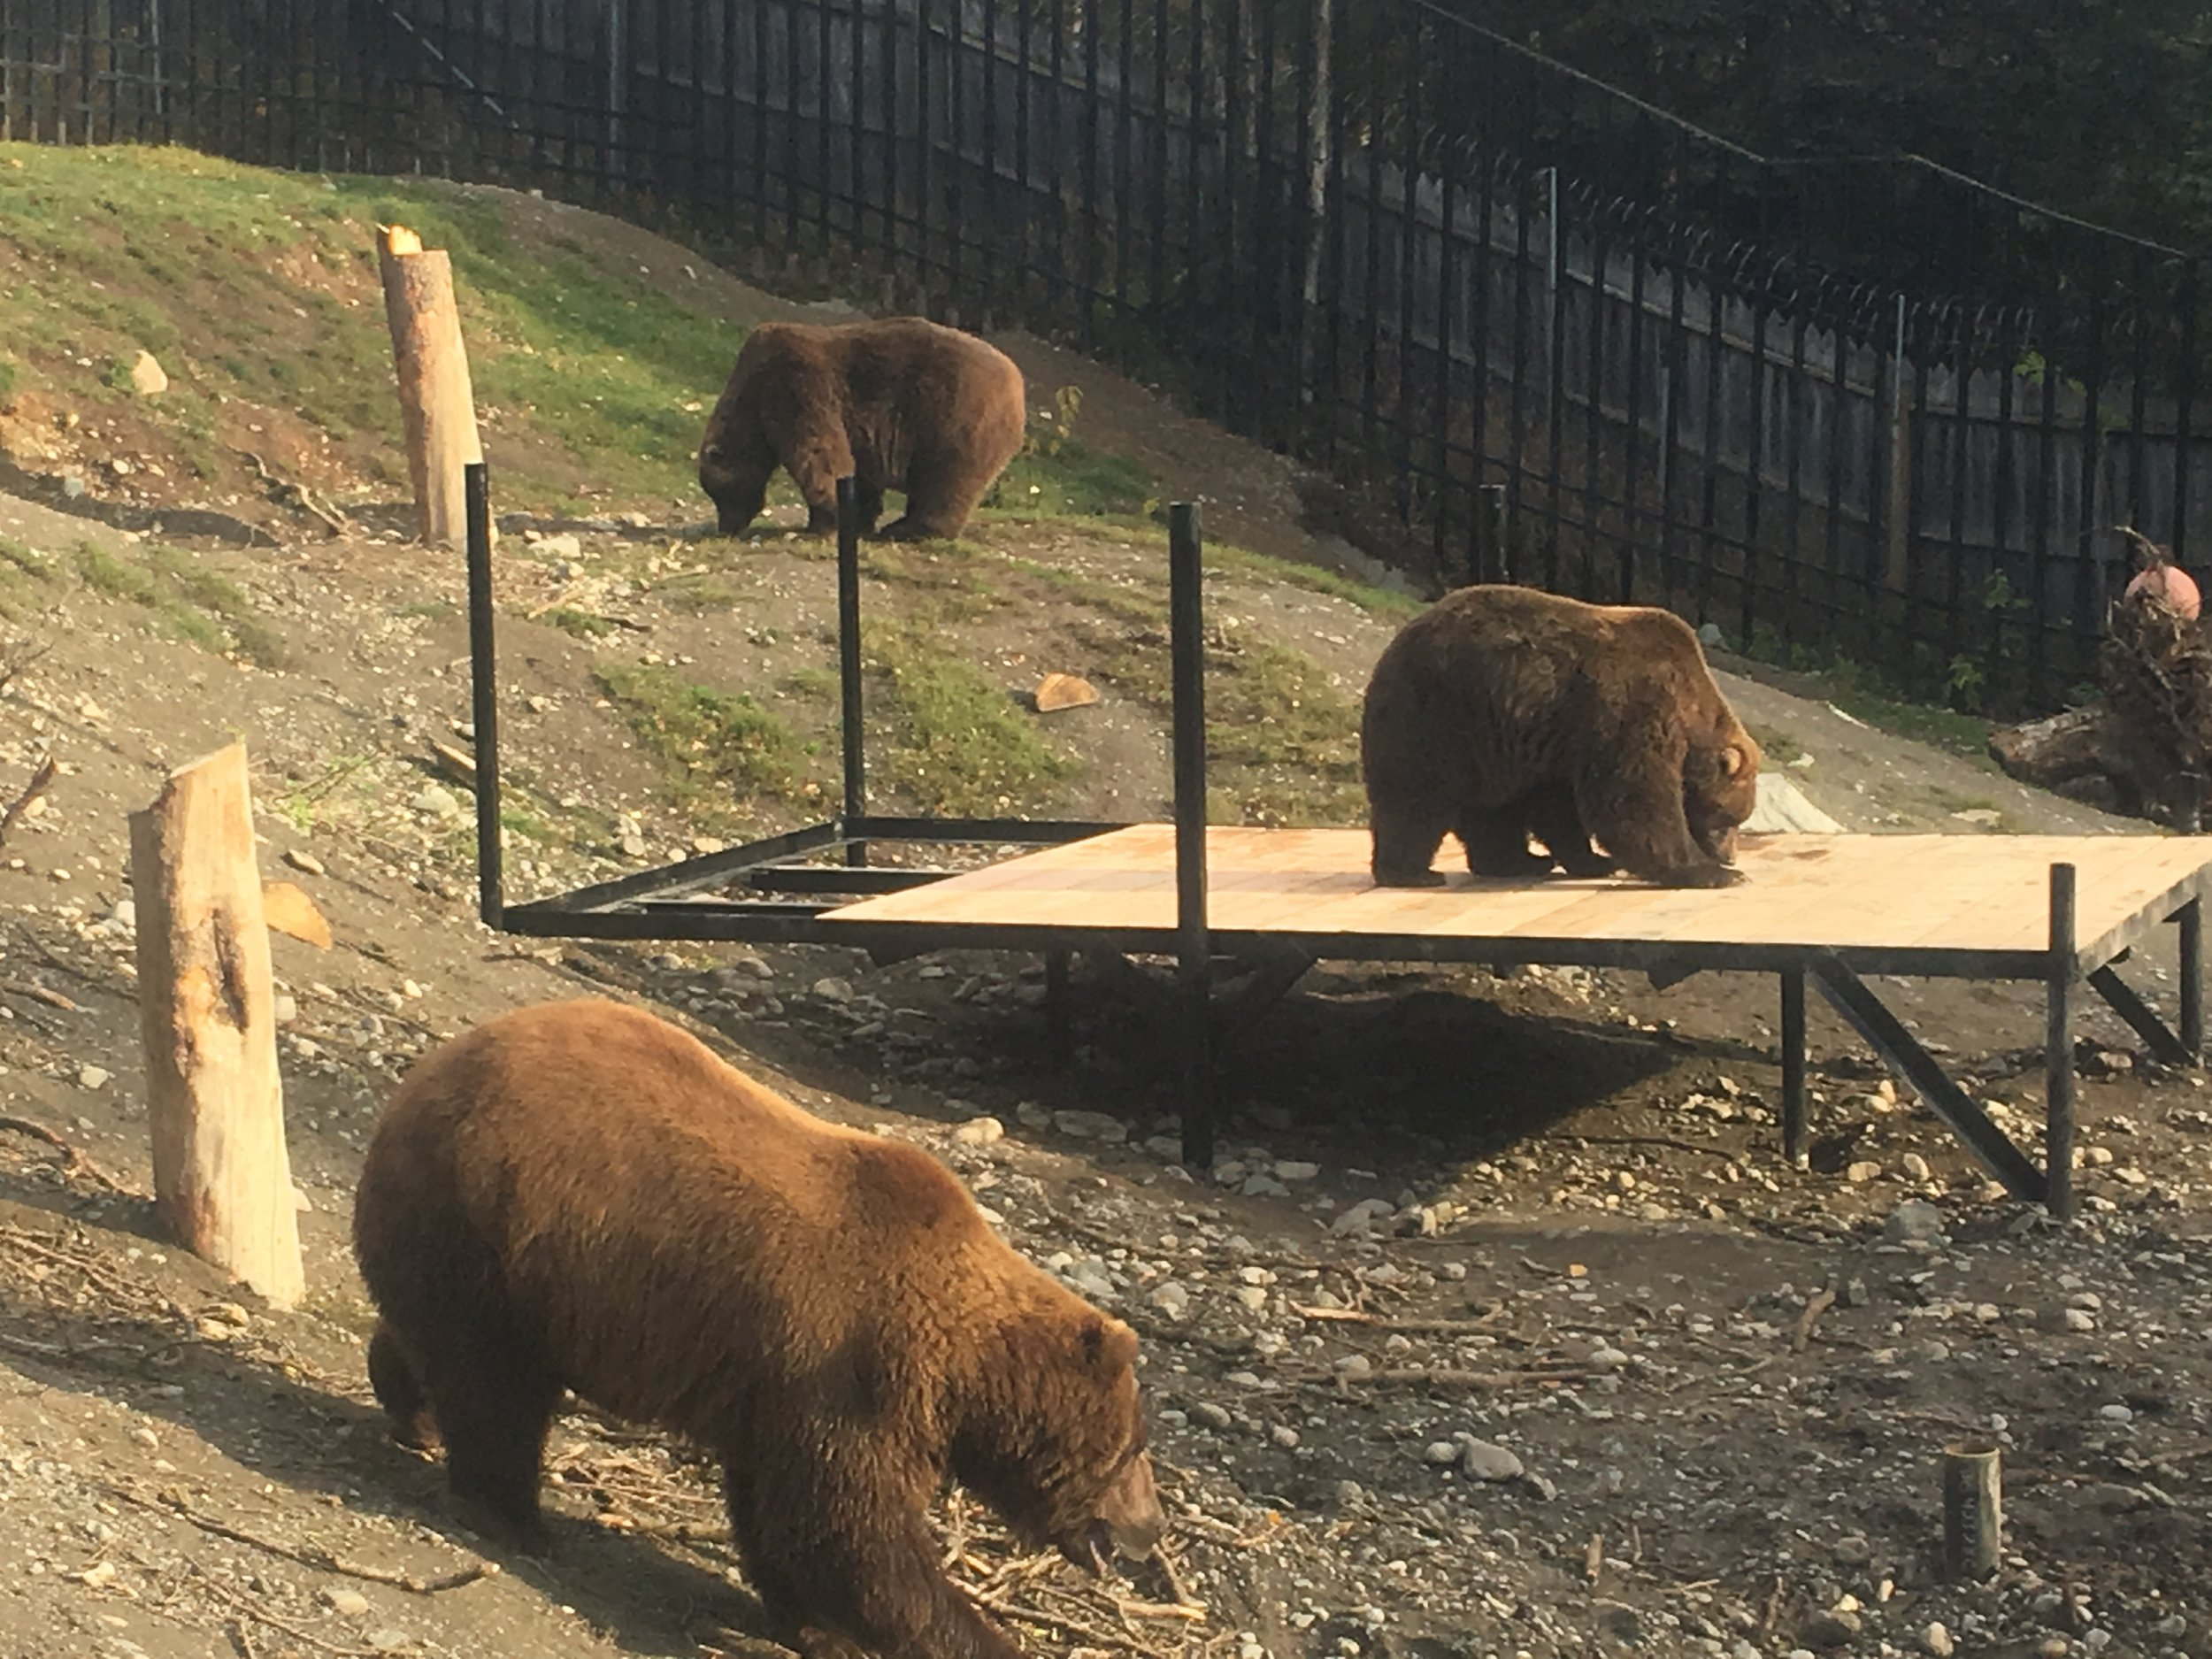 The bears are already seeing the fruits of your donations! Image by zookeeper Tim Lescher.